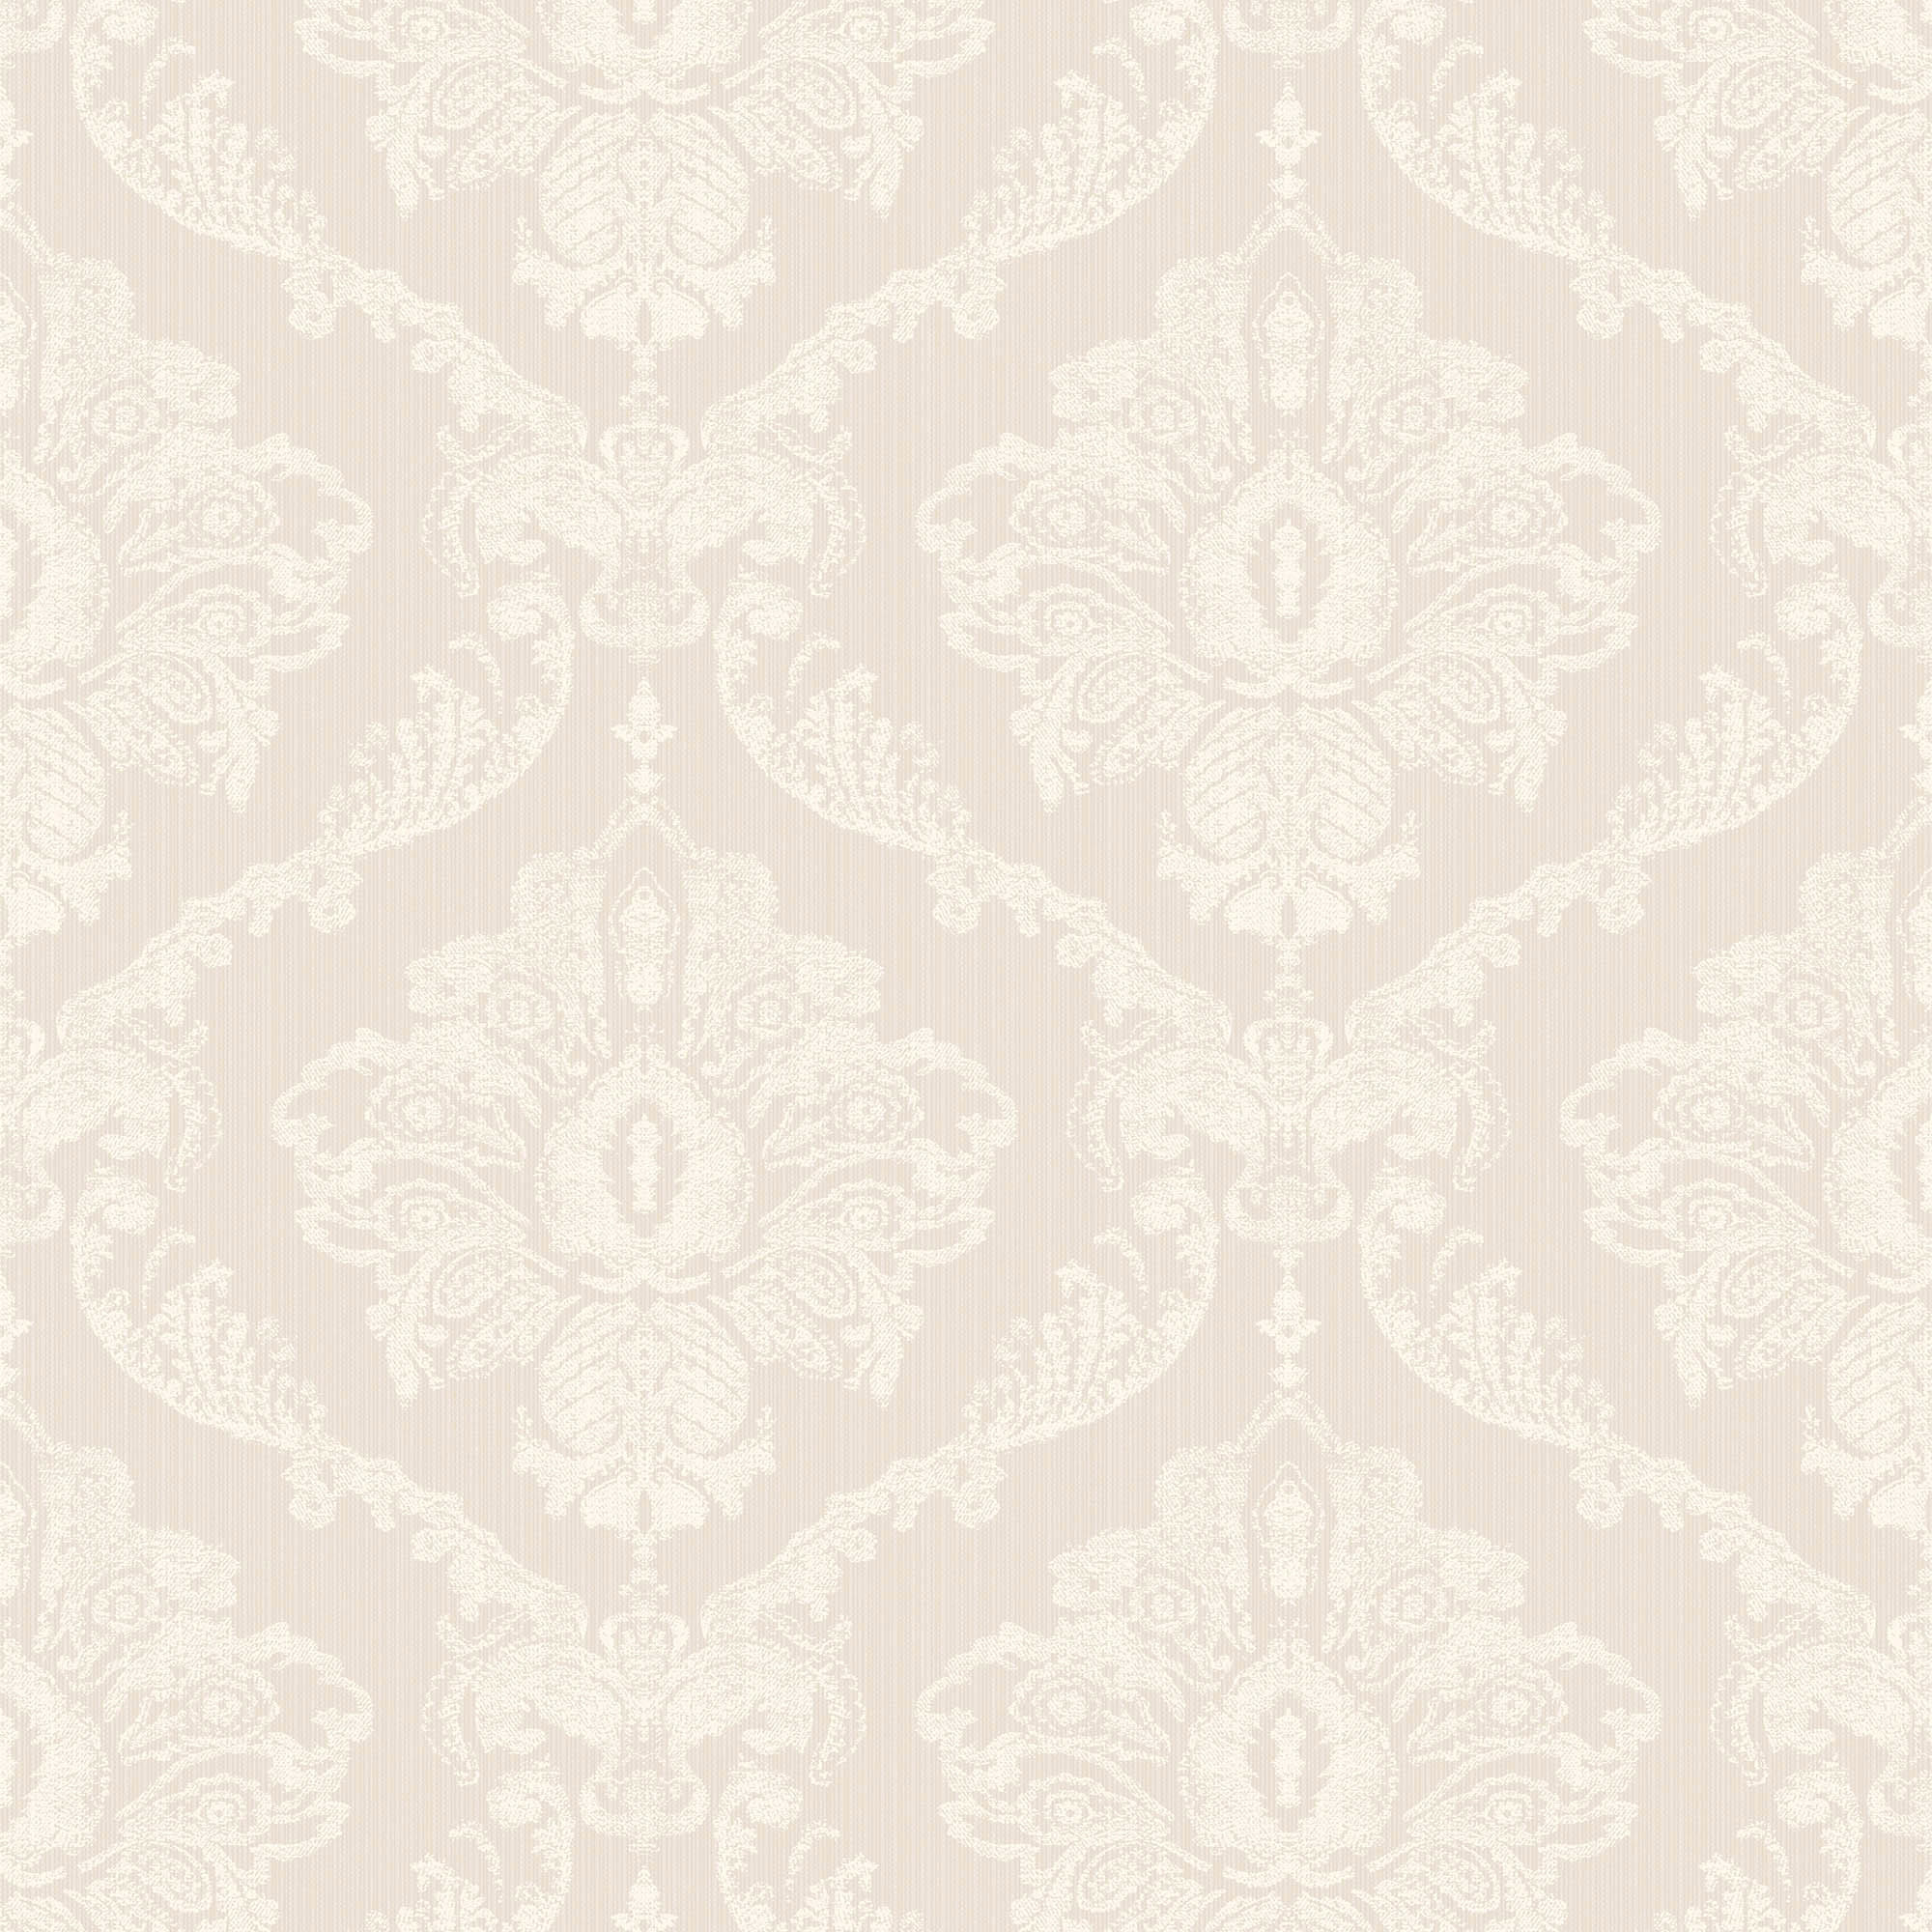 2000x2000 Dorma Natural Aveline Damask Wallpaper